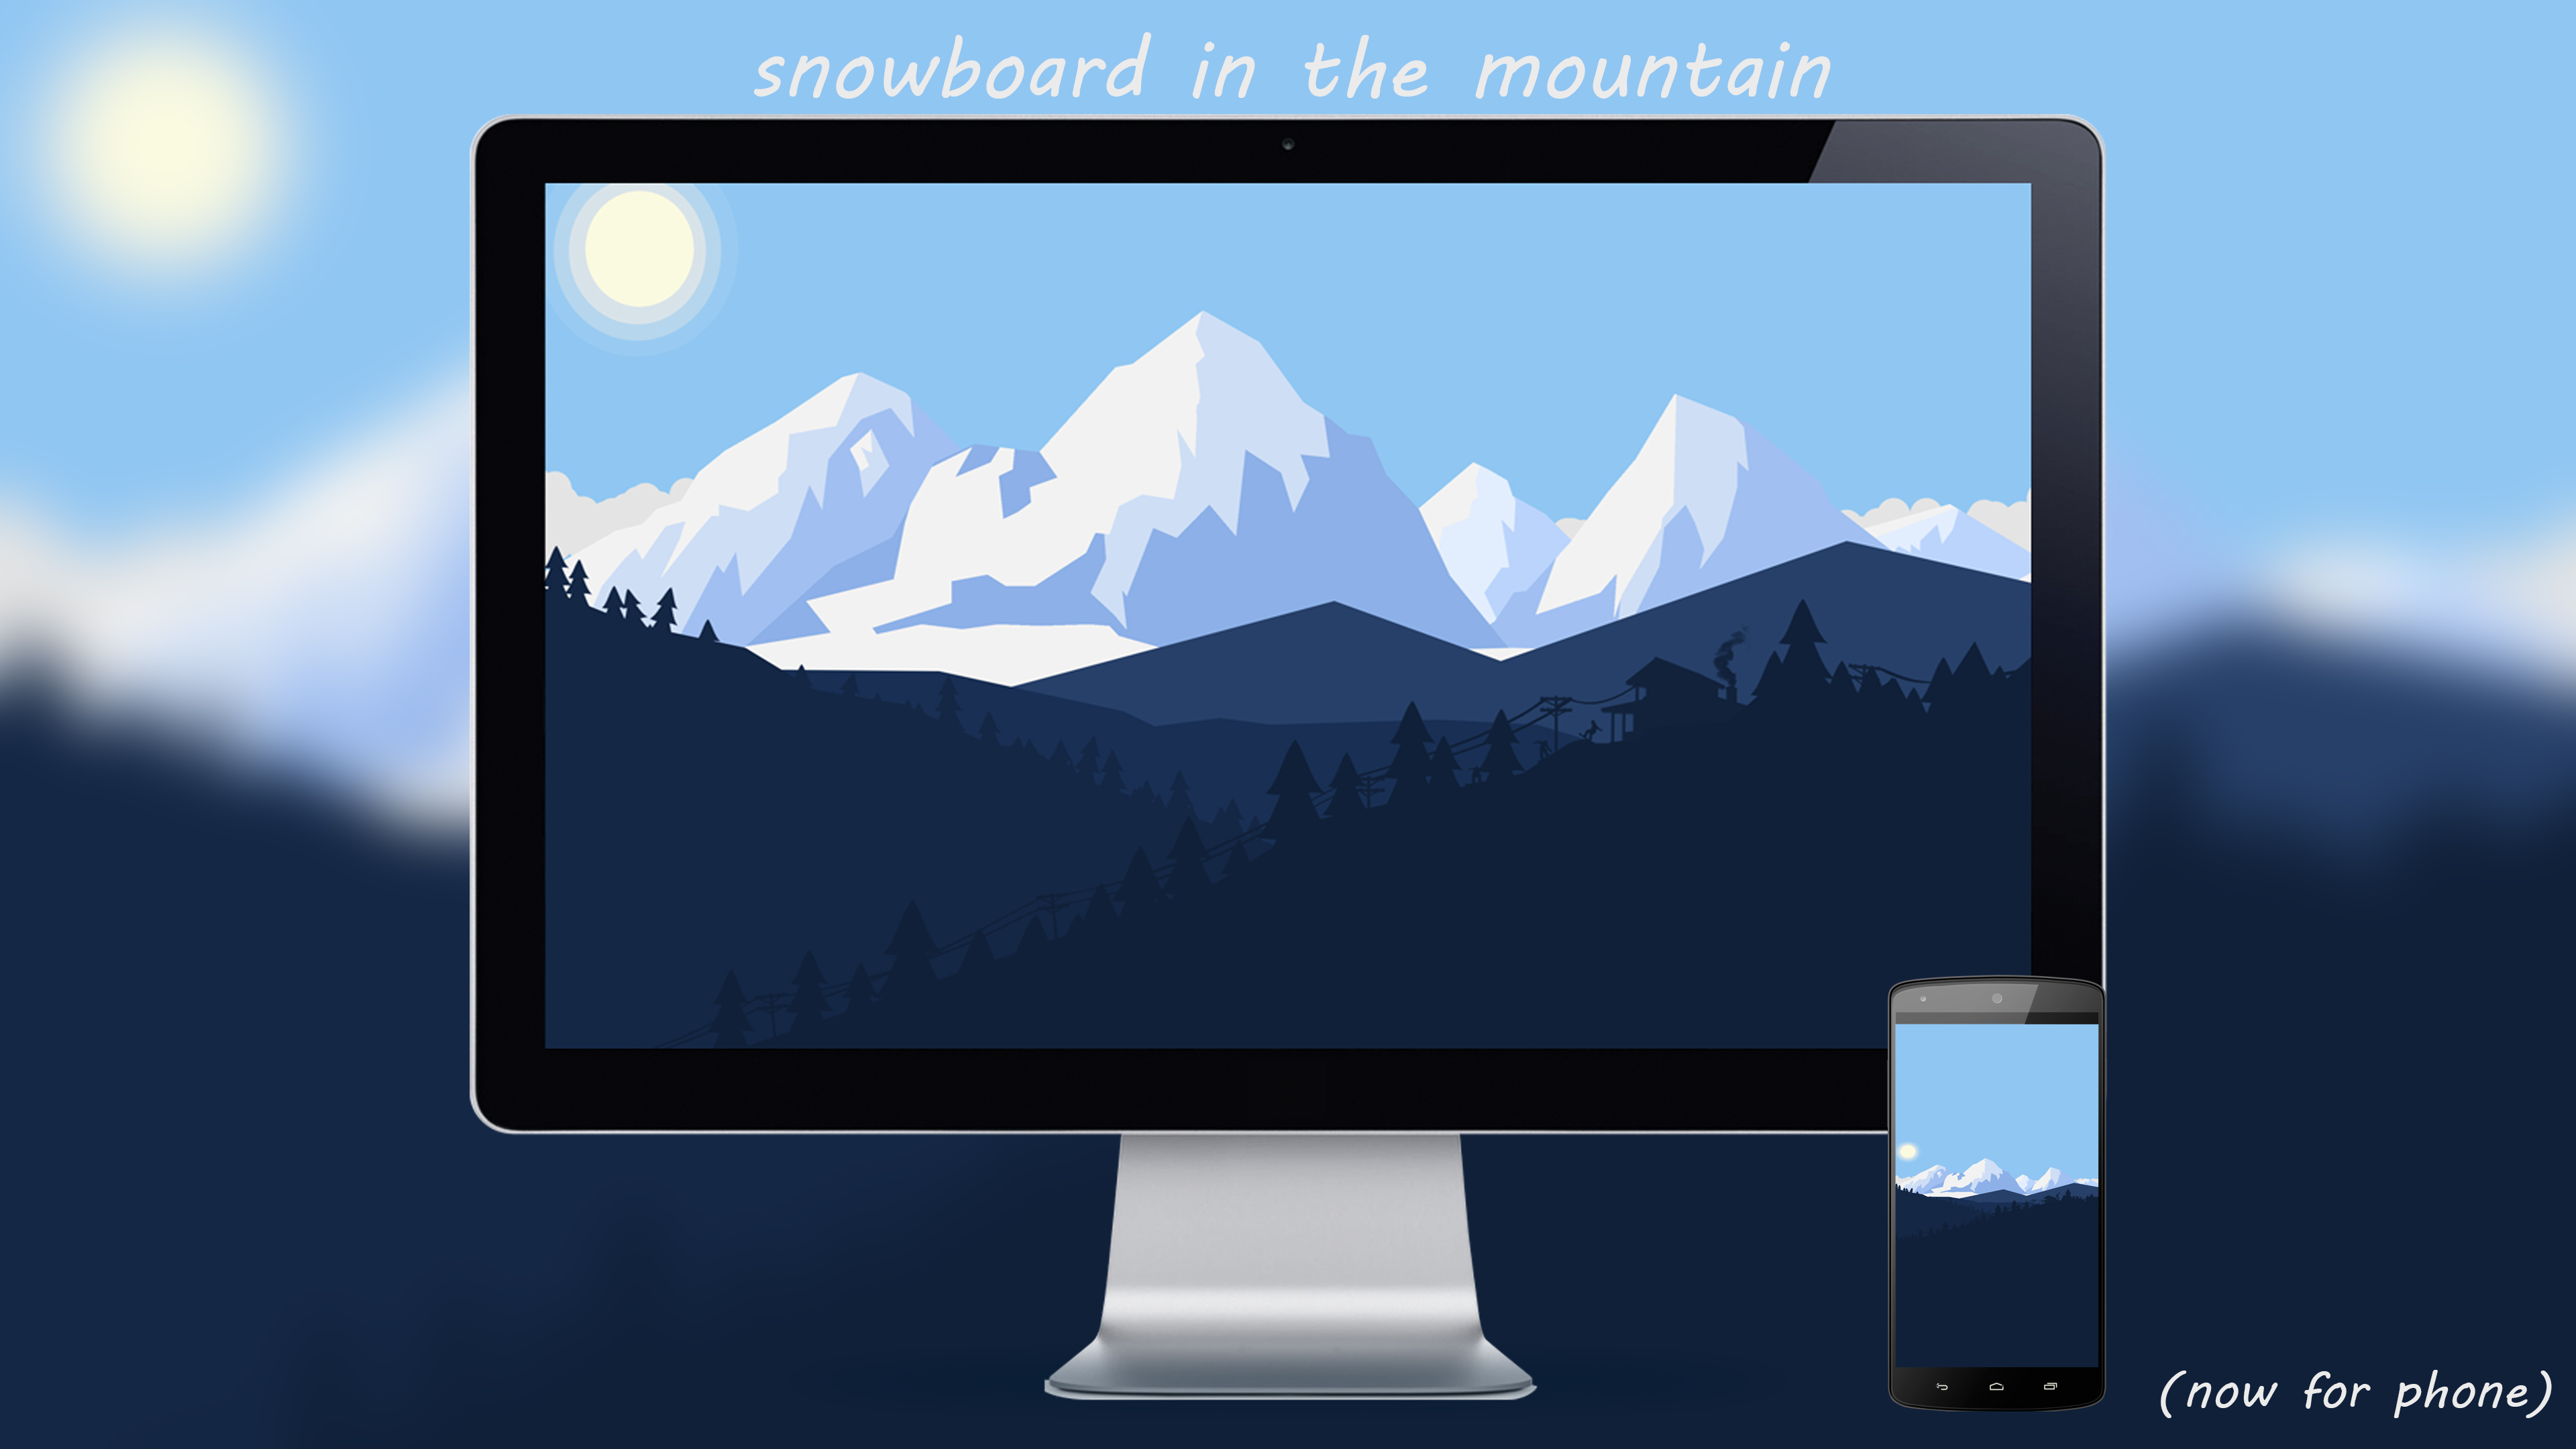 snowbord in the mountain by designuchiha.jpg